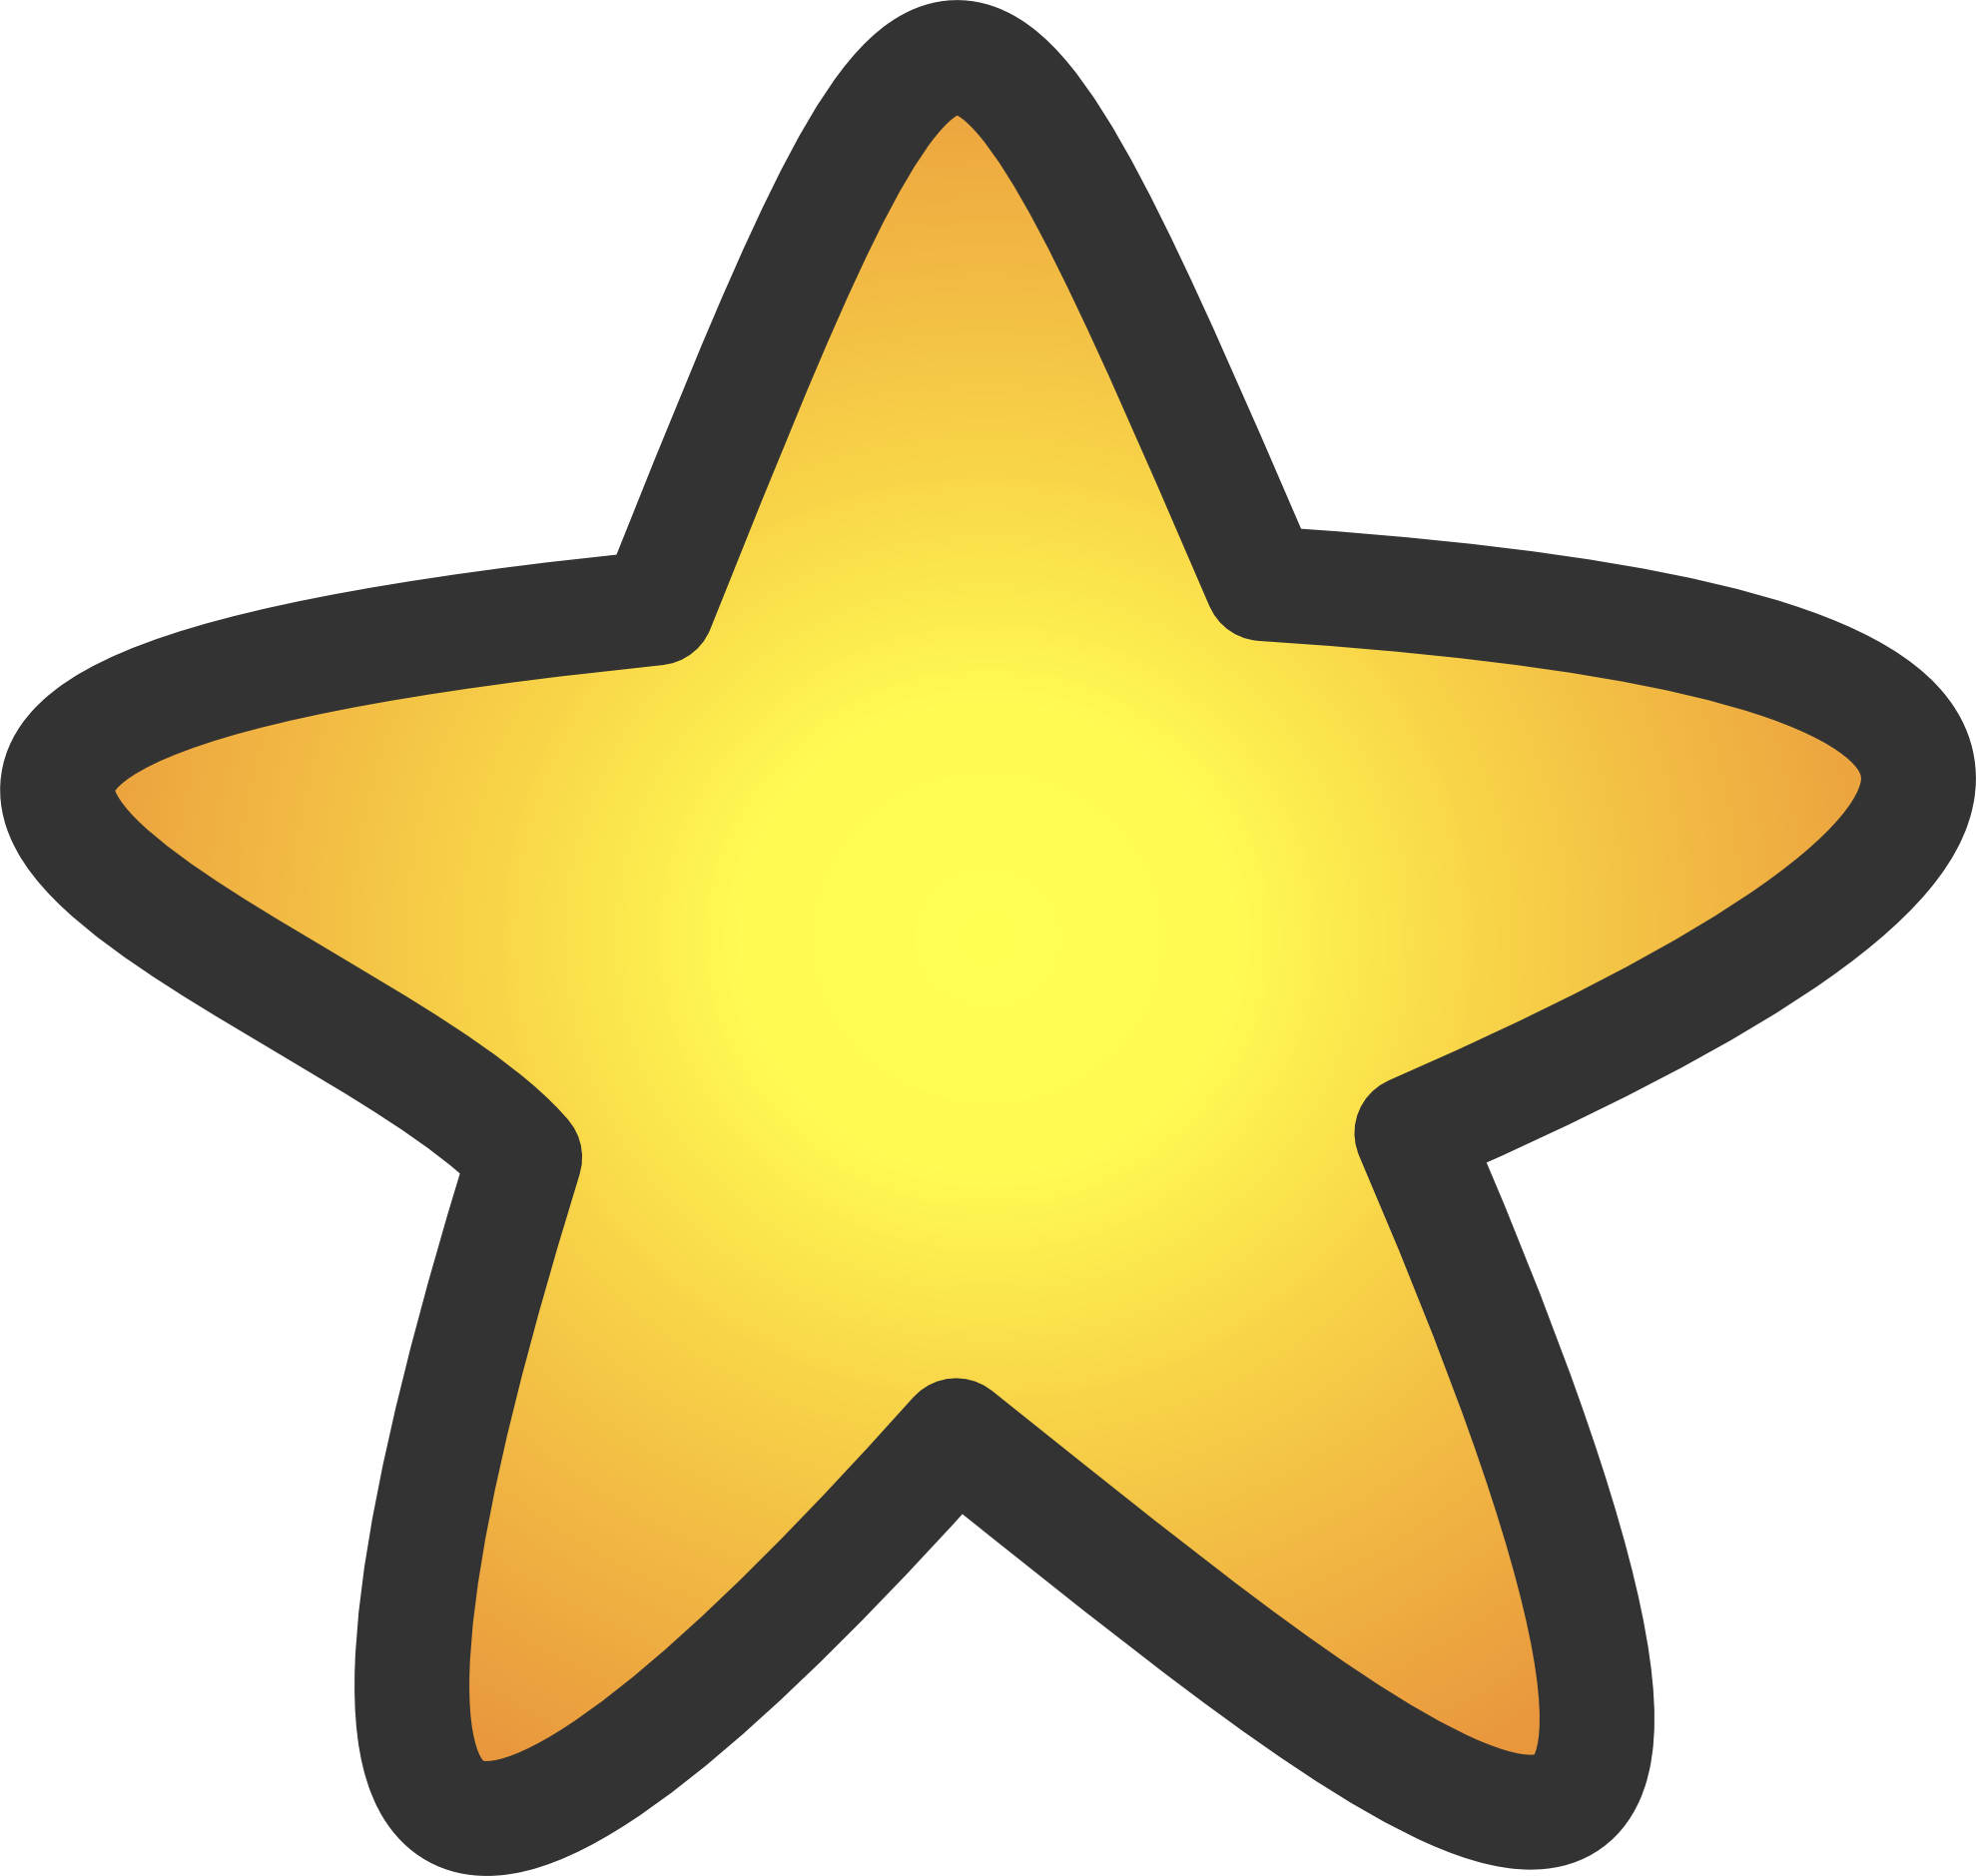 Free Picture Of A Gold Star, Download Free Clip Art, Free Clip Art.